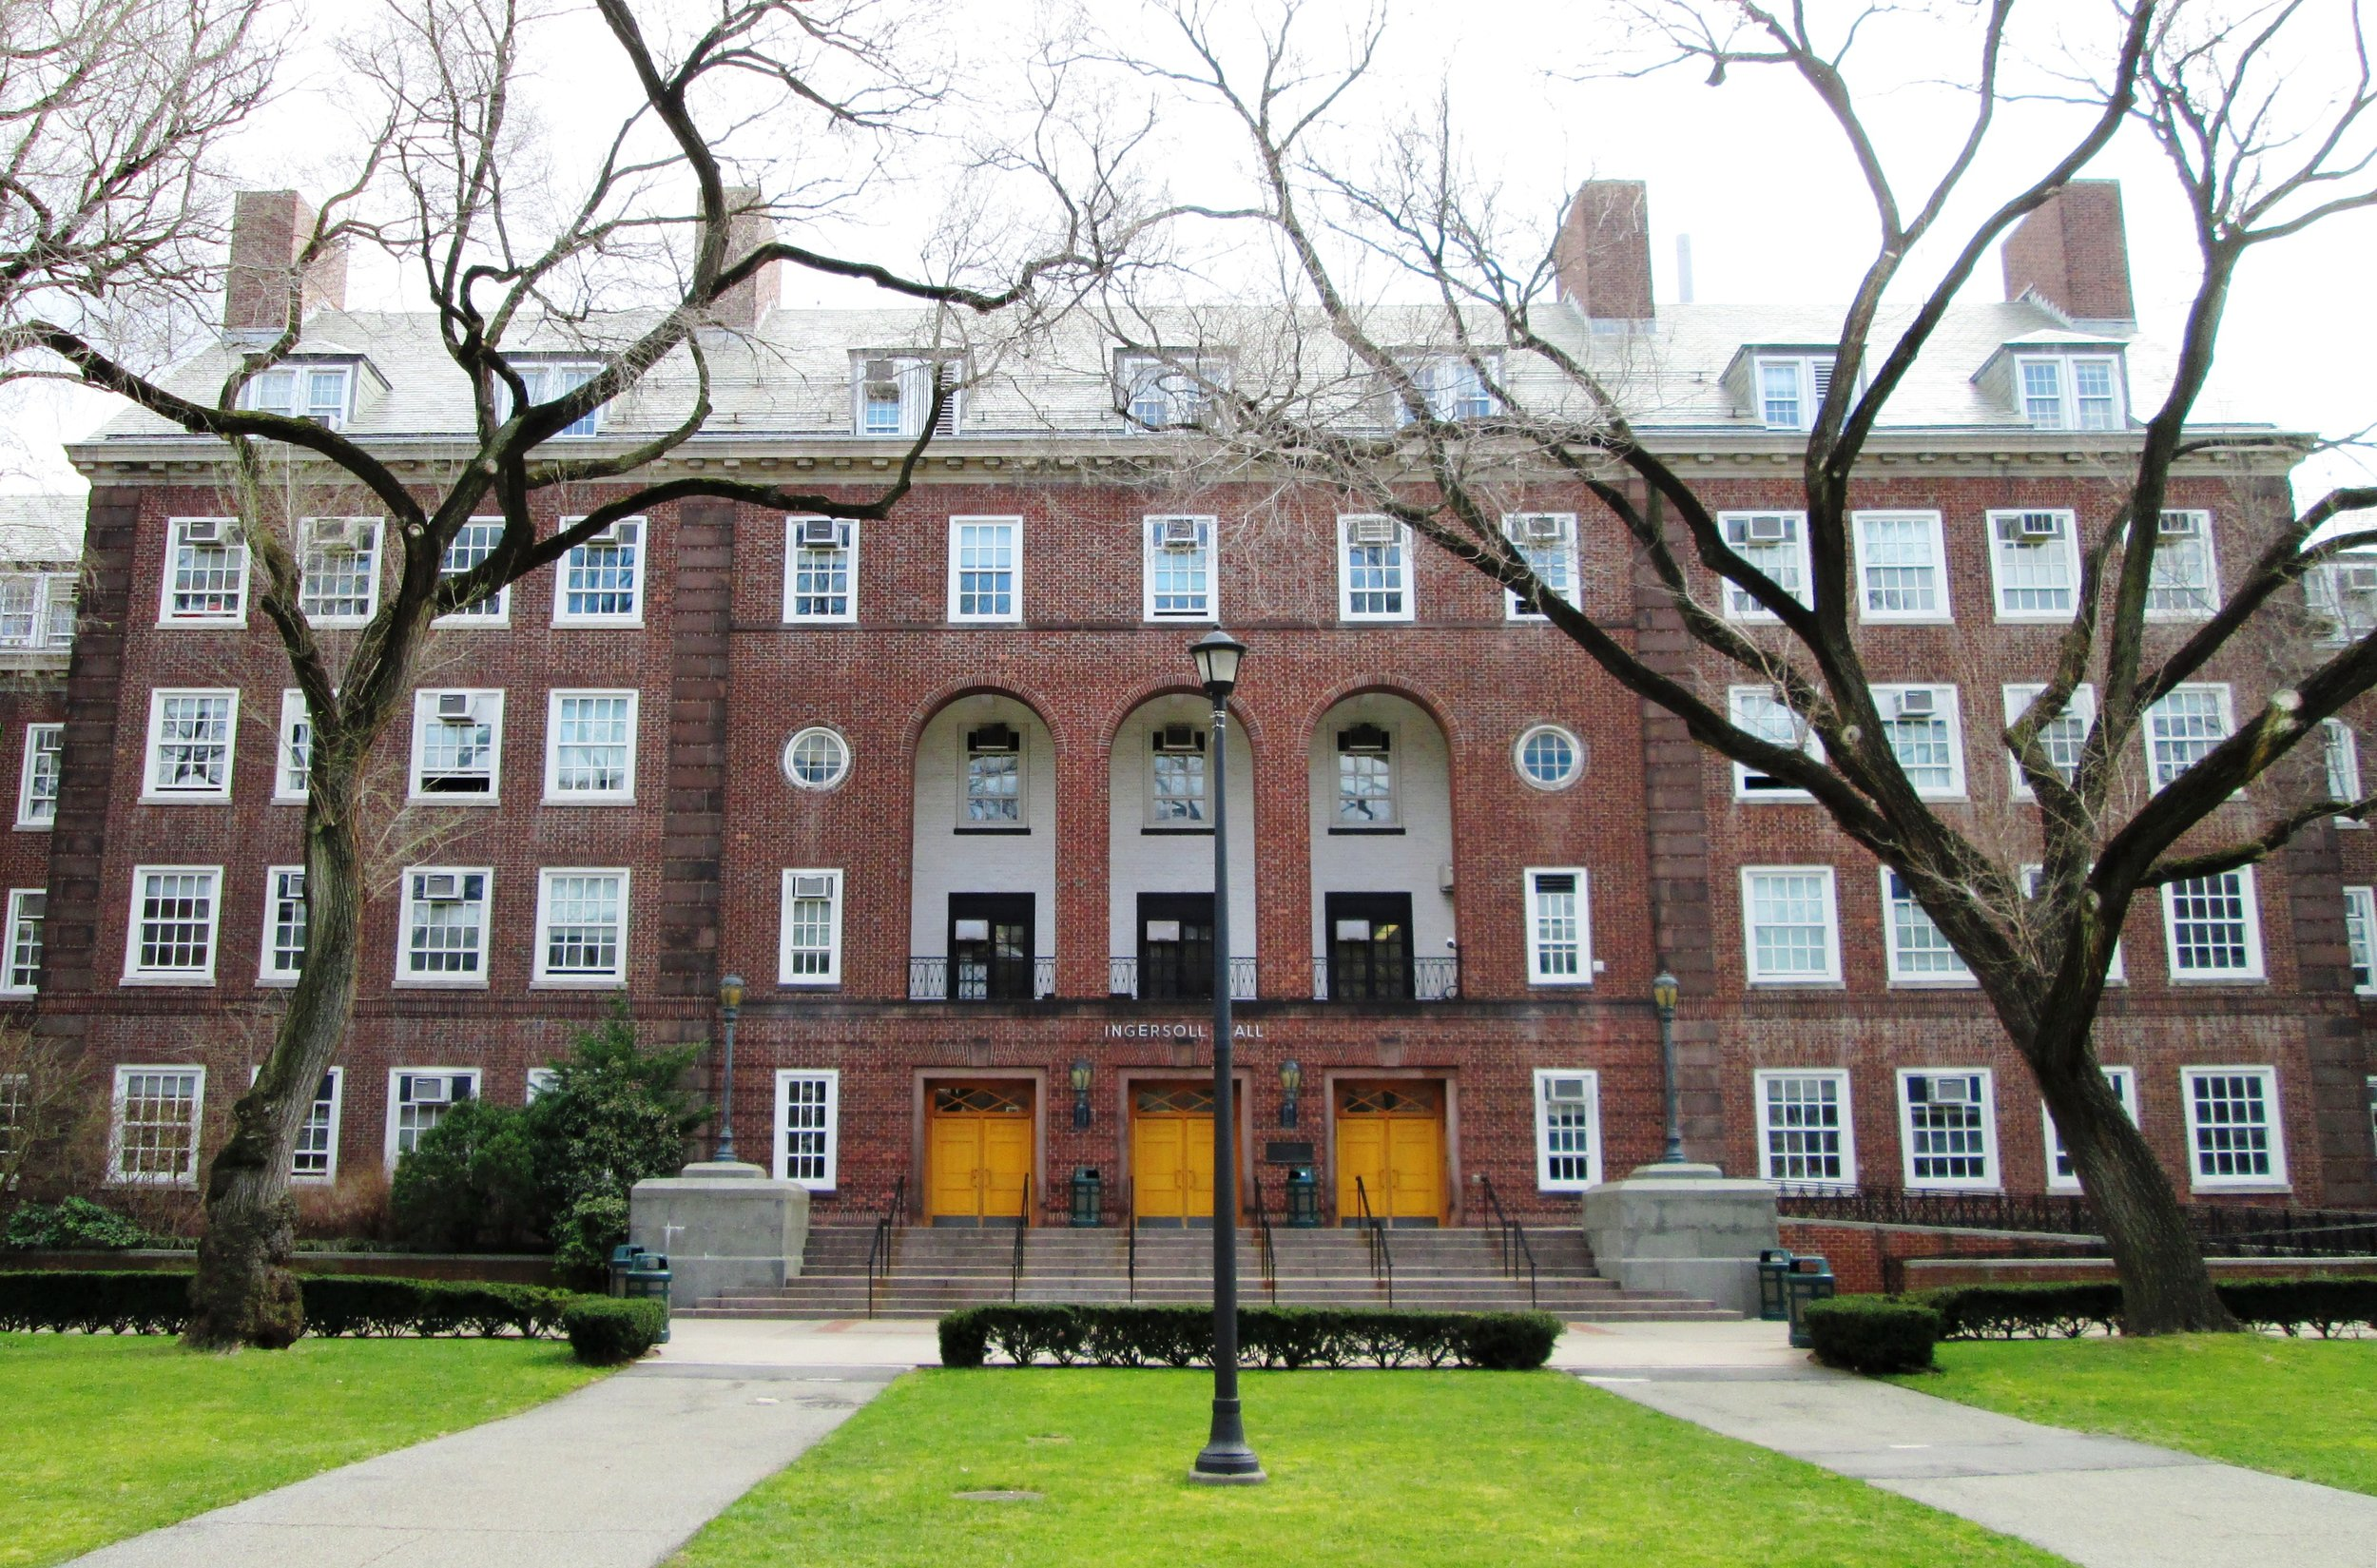 CUNY Brooklyn College - Ingersoll Hall